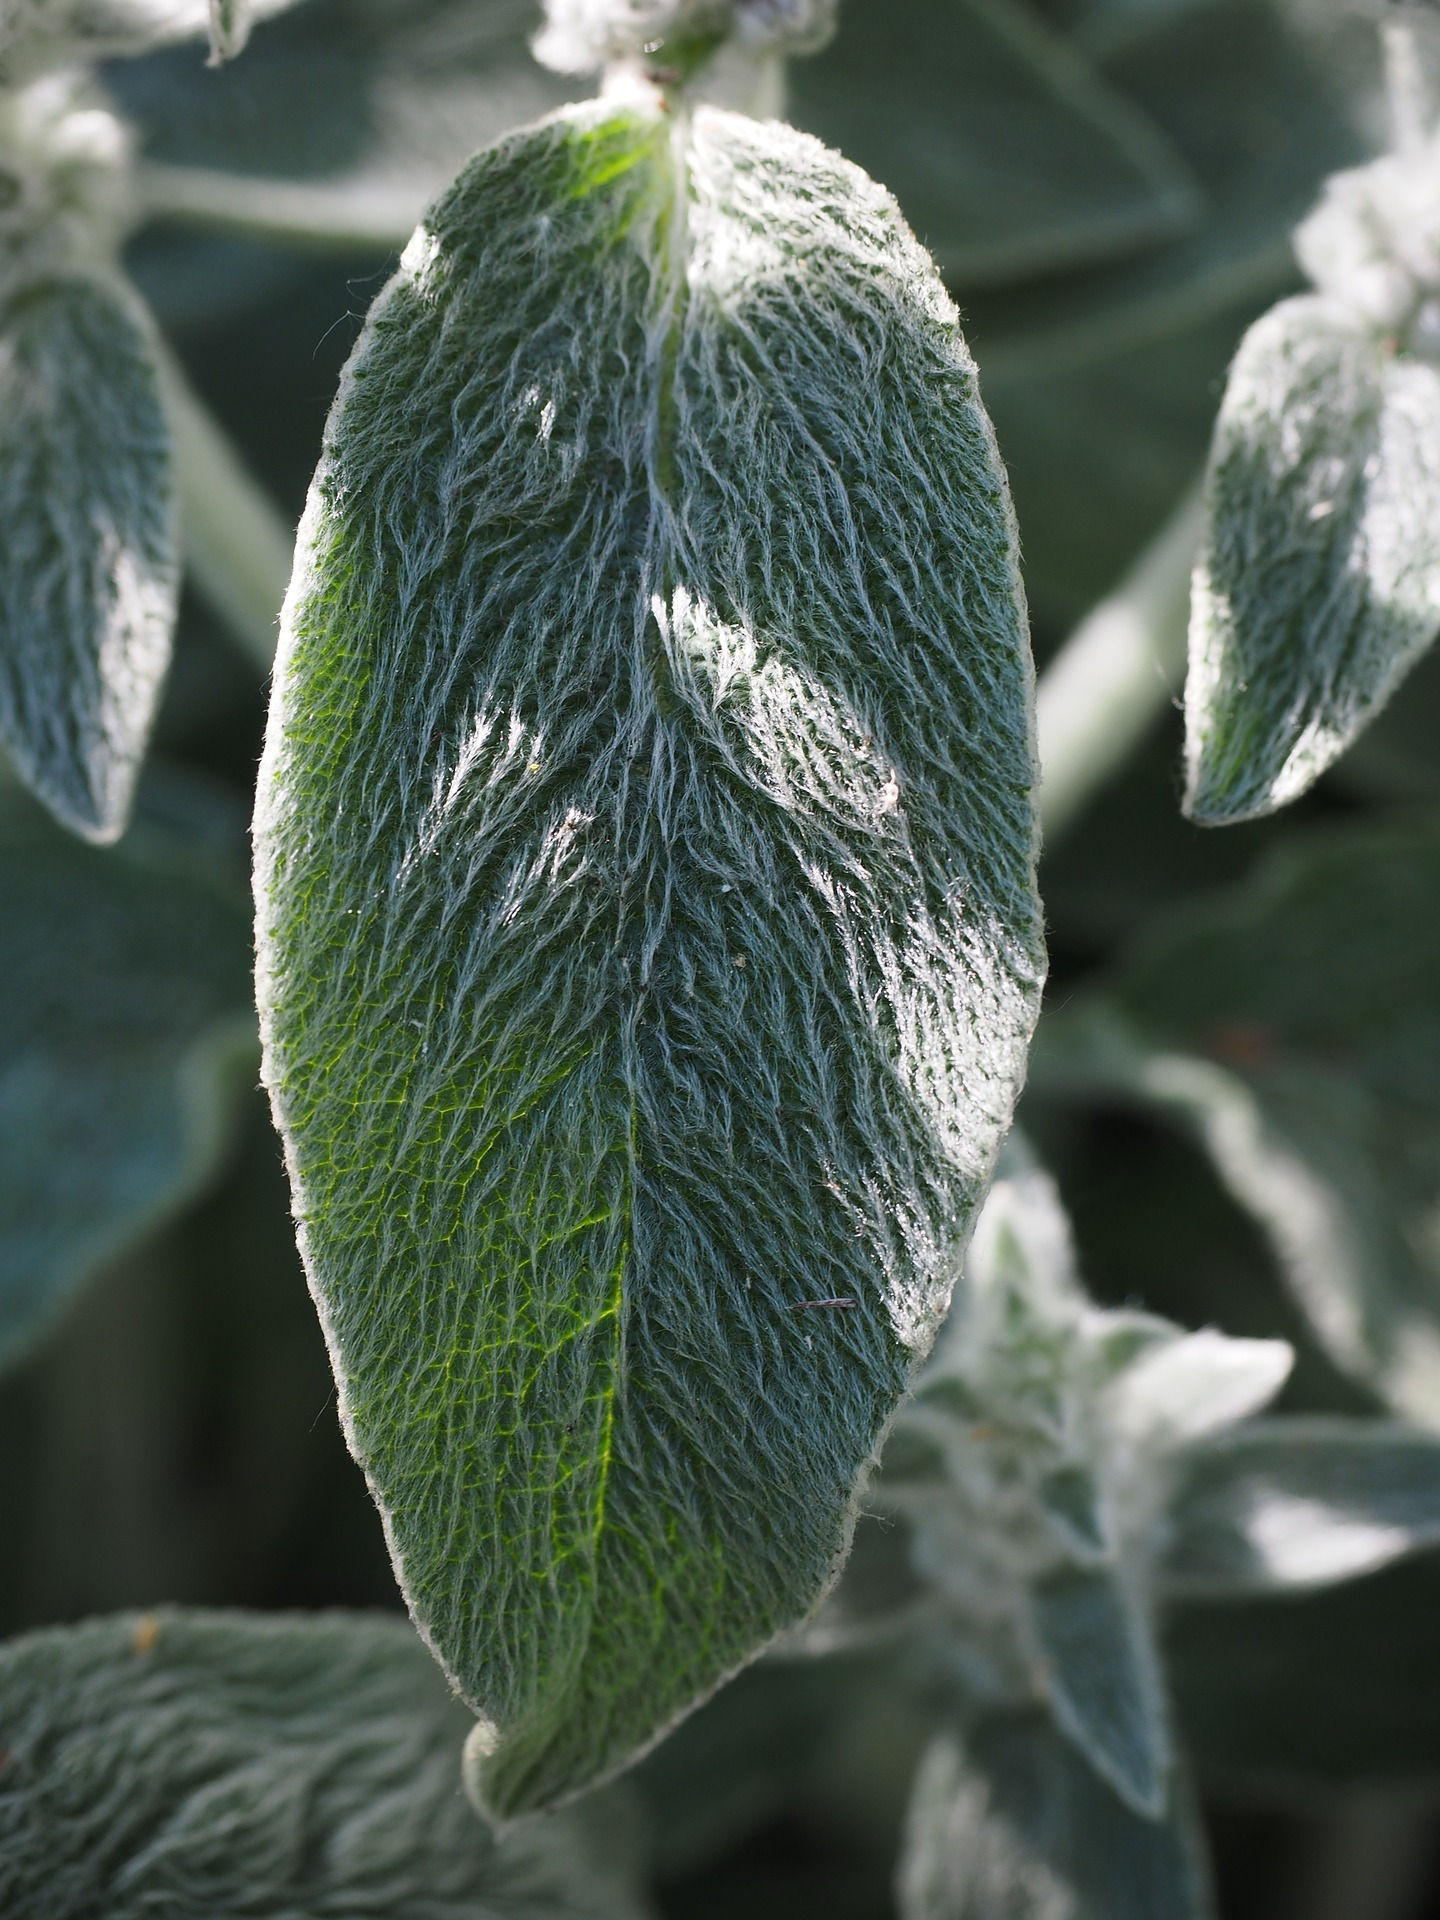 Nudity-friendly plants for World Naked Gardening Day: Stachys lanata